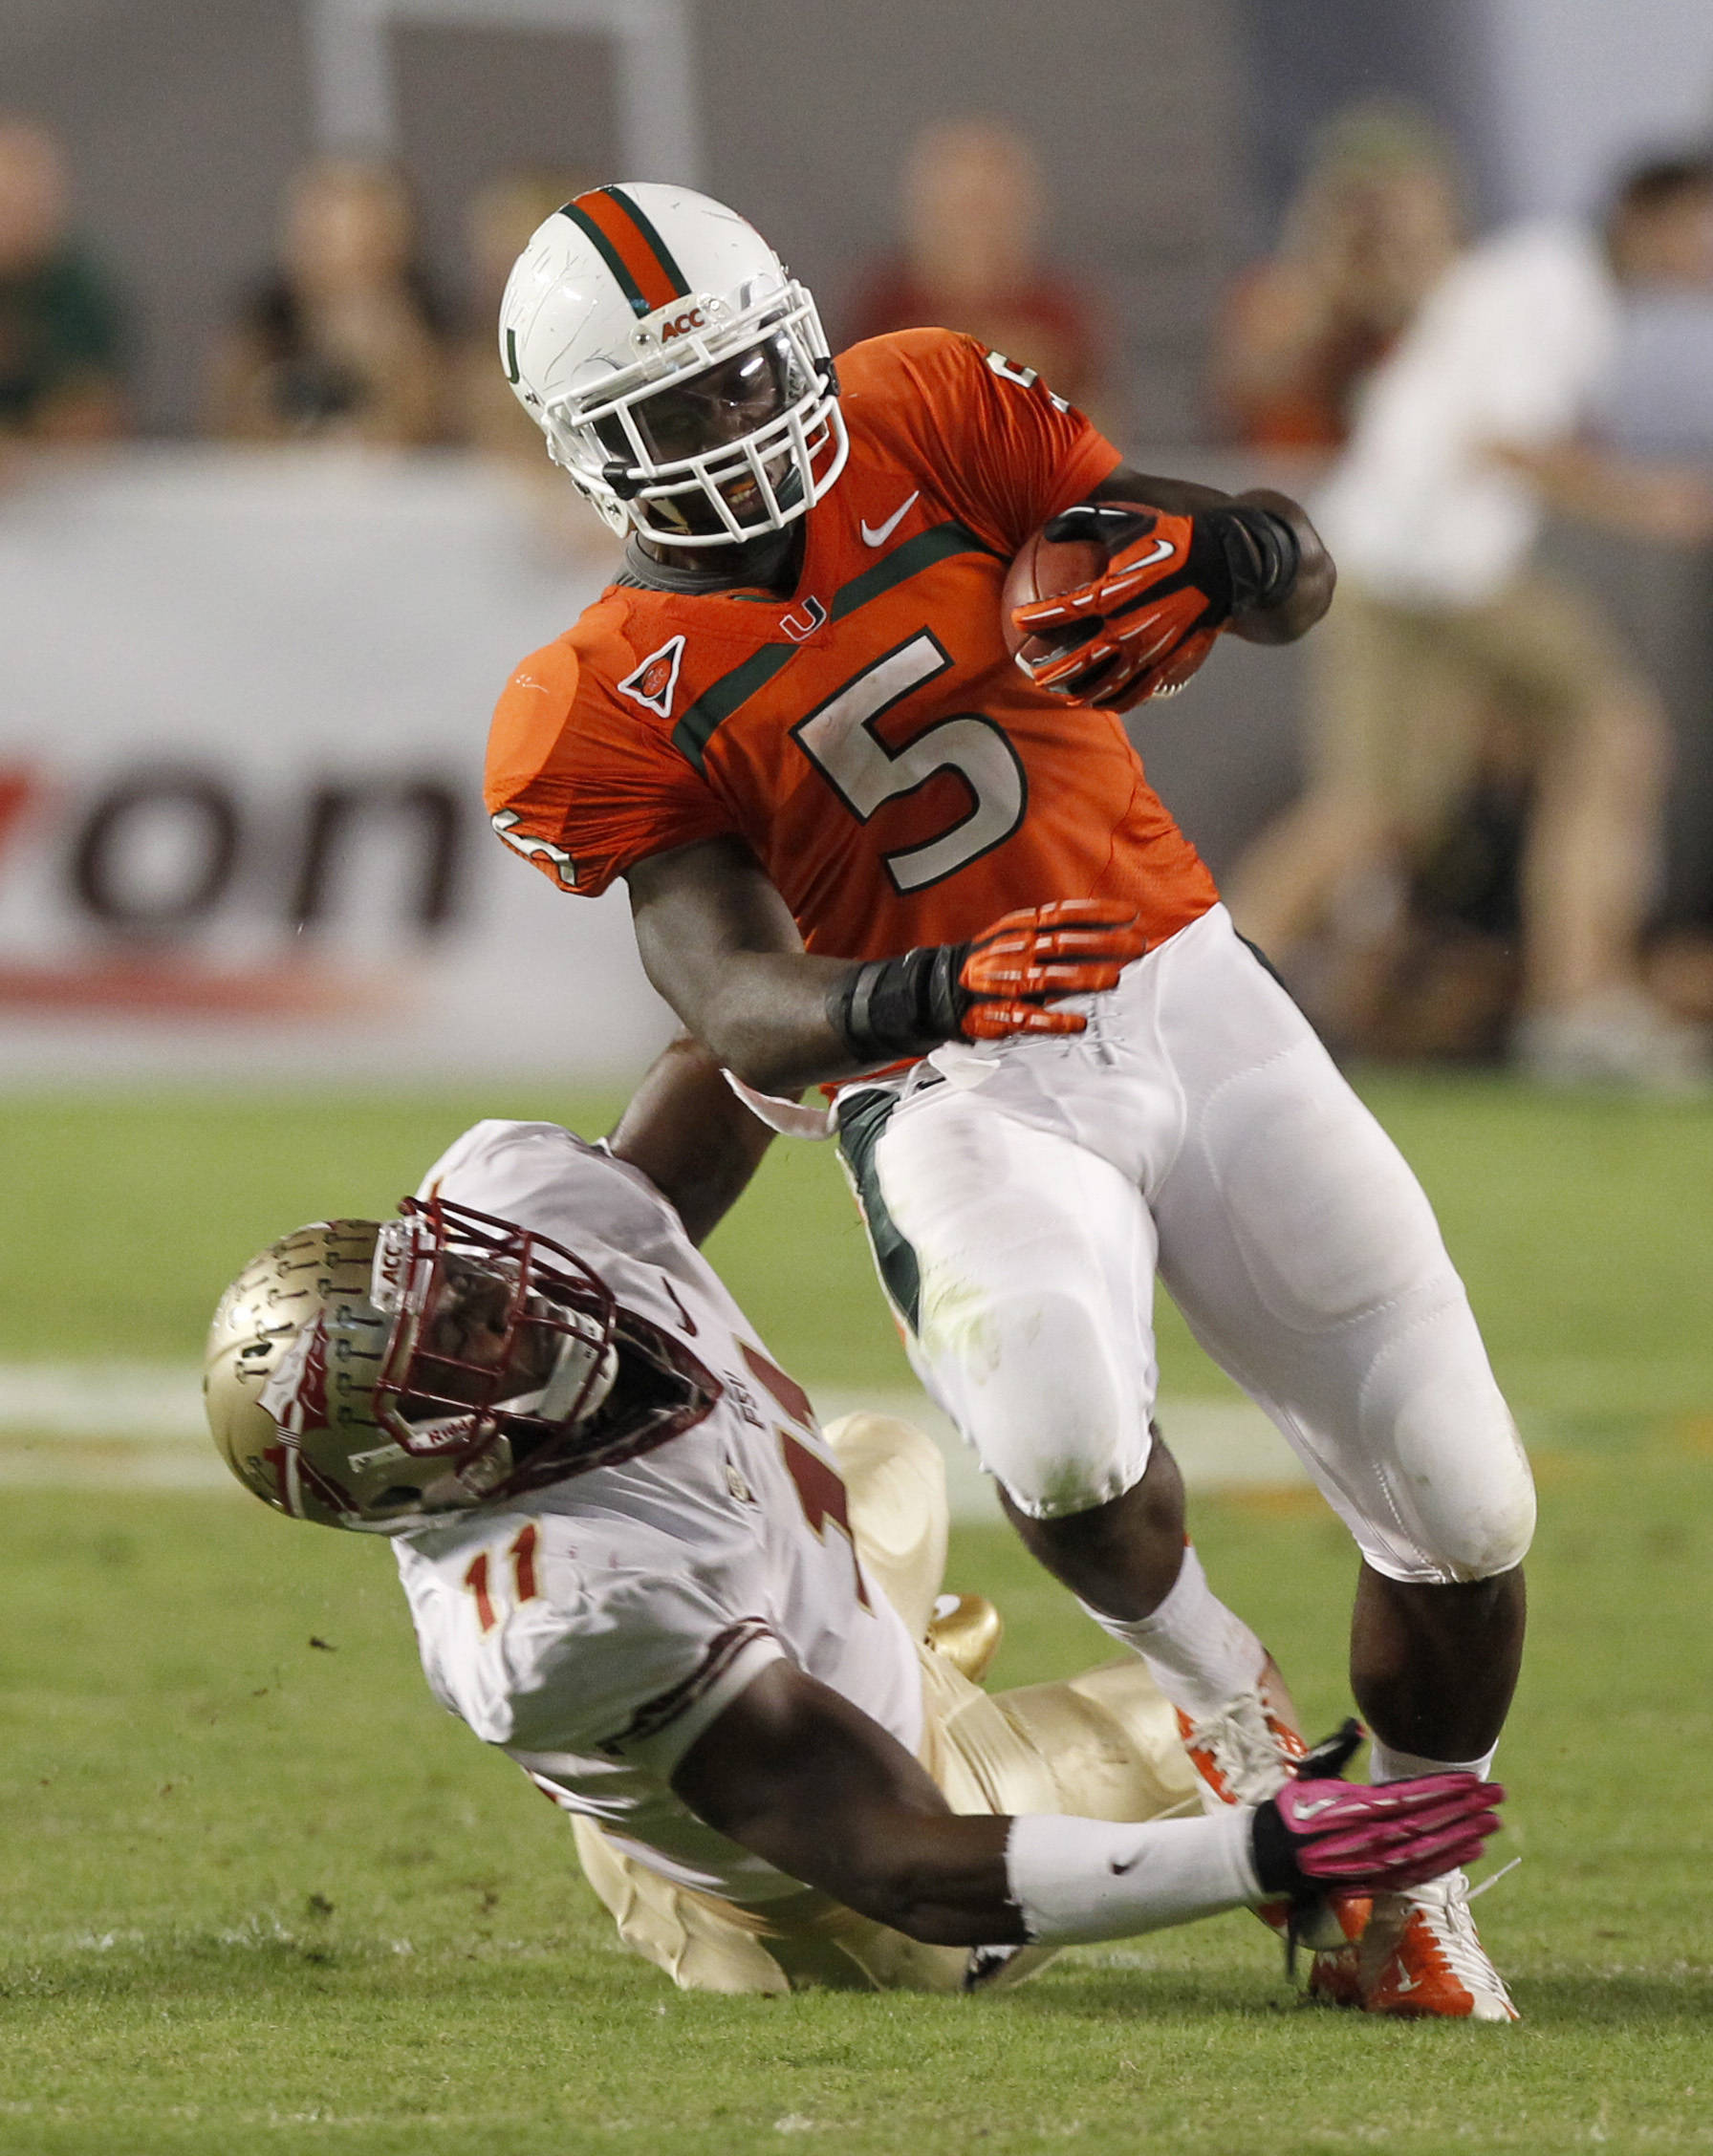 Miami's Mike James (5) is brought down by Florida State's linebacker Vince Williams (11) during the half of an NCAA college football game in Miami, Saturday, Oct. 20, 2012. (AP Photo/Alan Diaz)